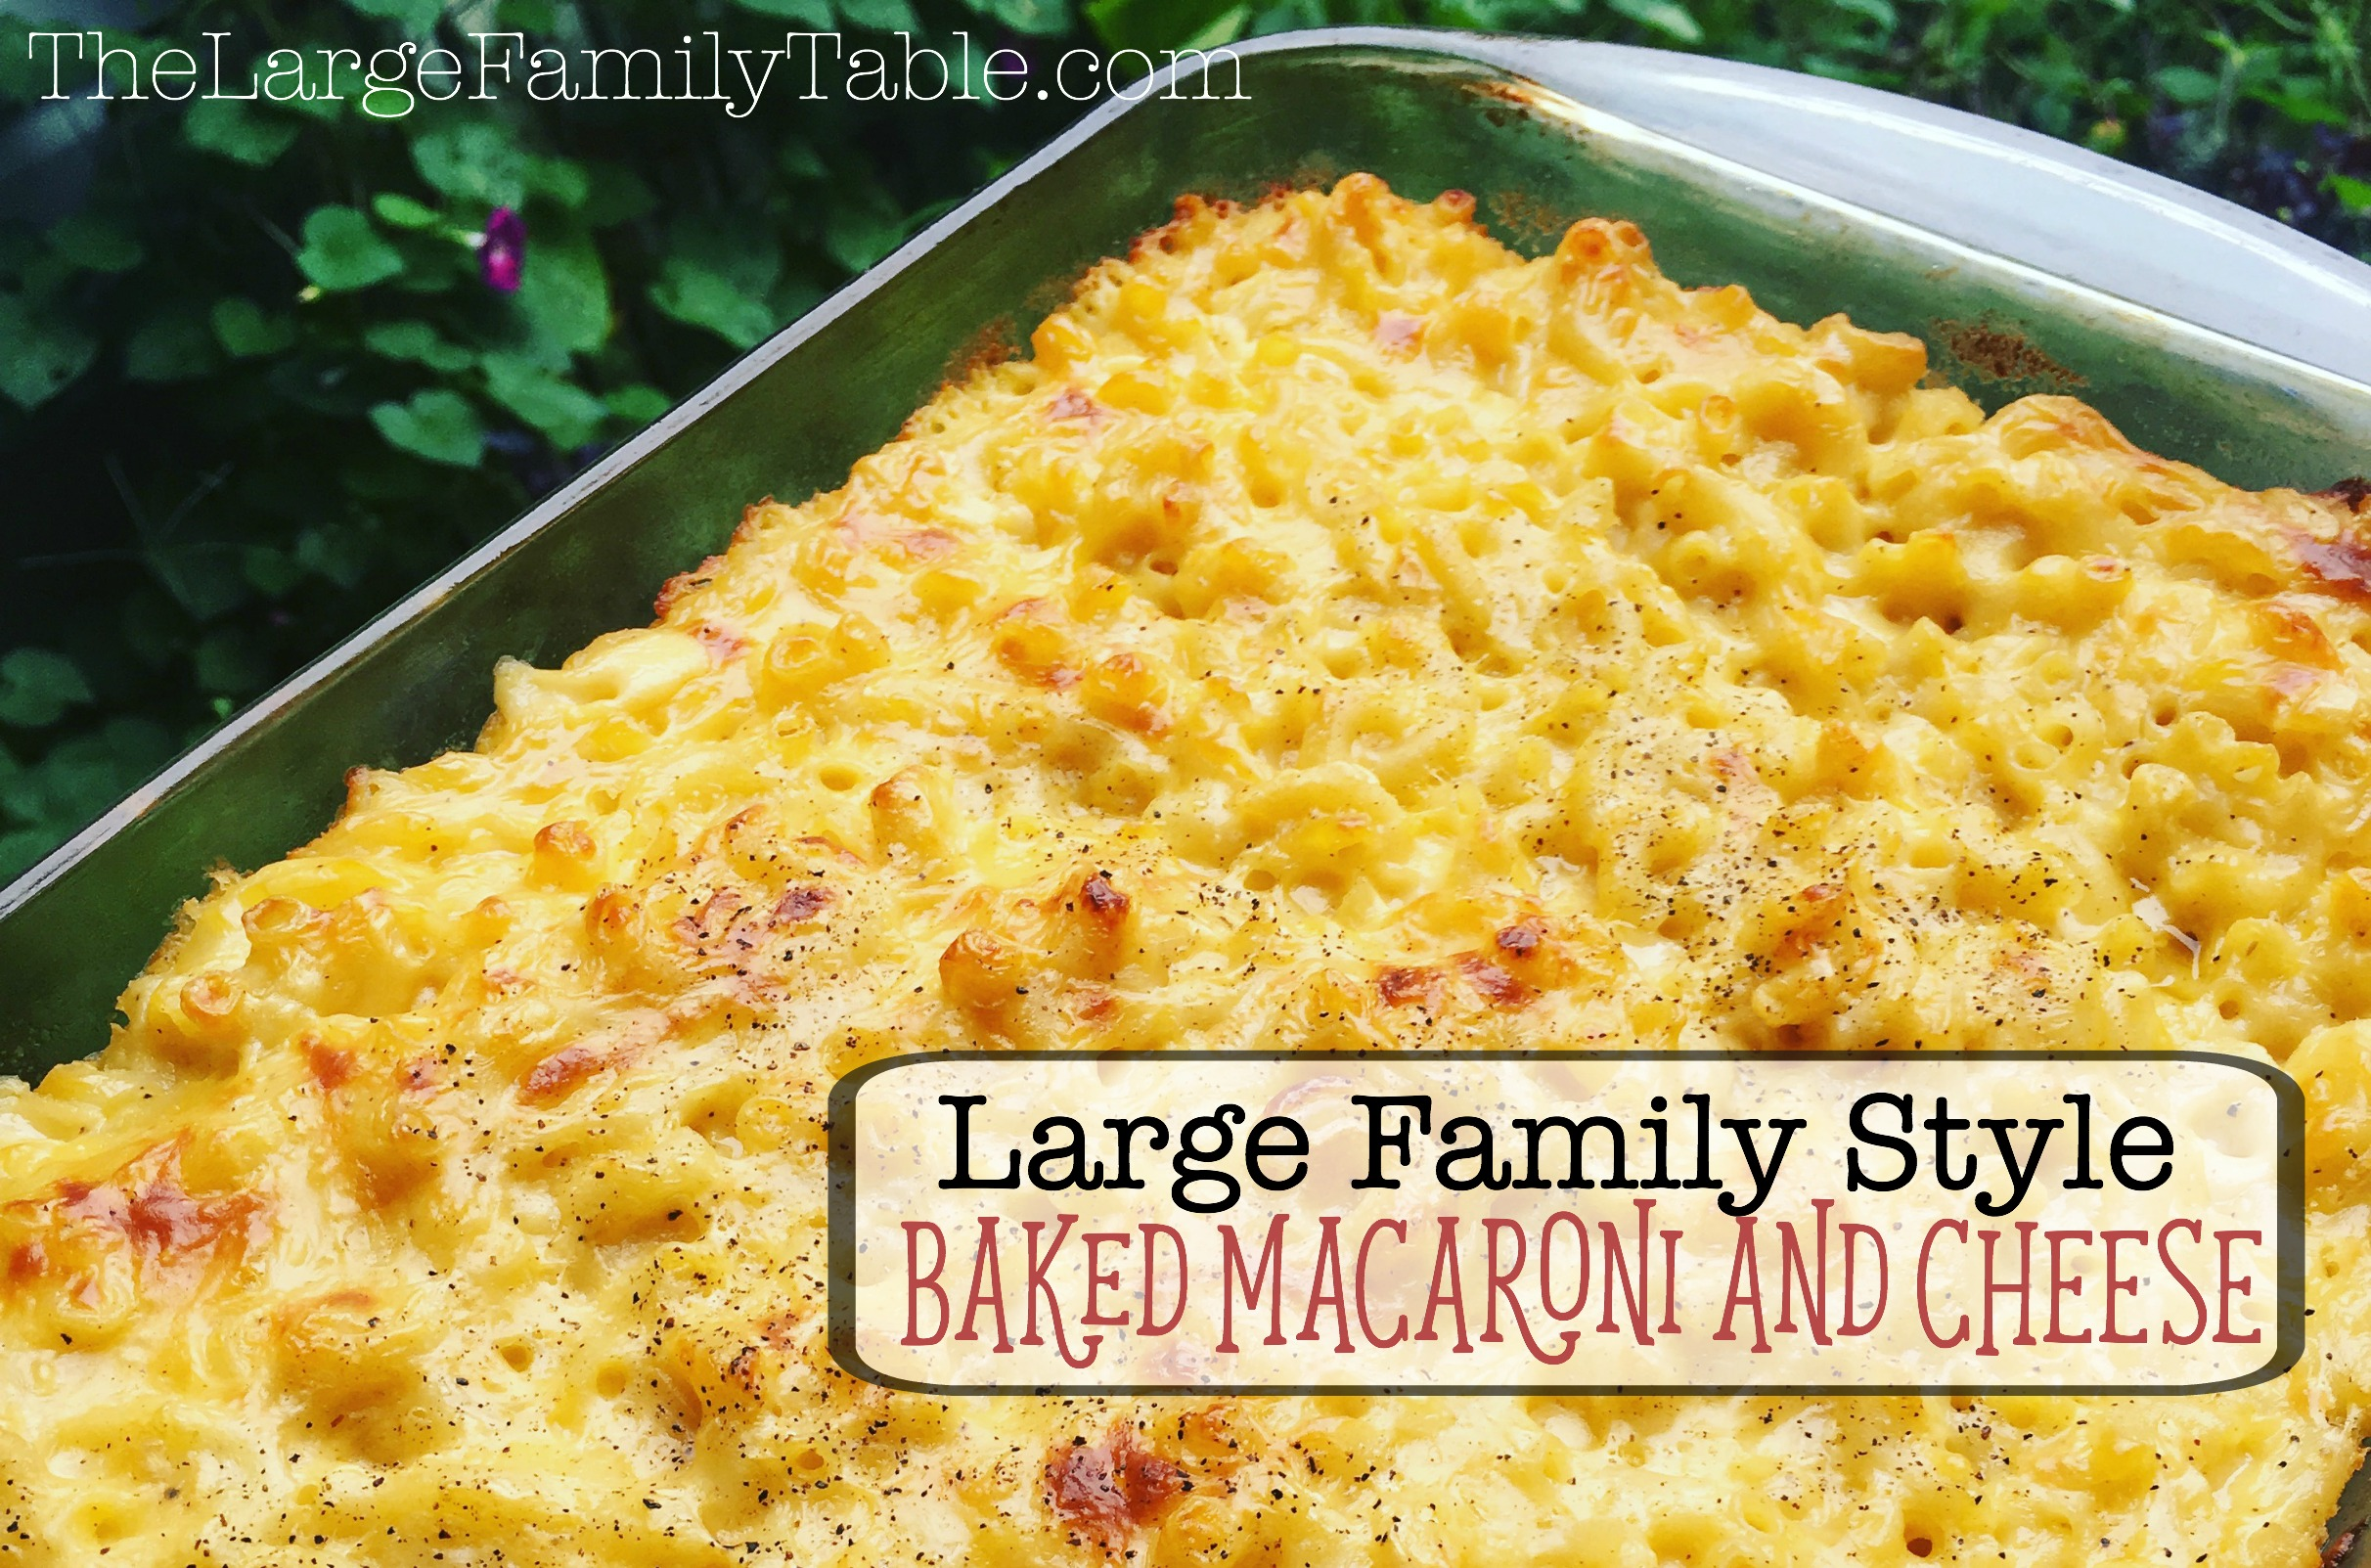 large-family-baked-macaroni-and-cheese